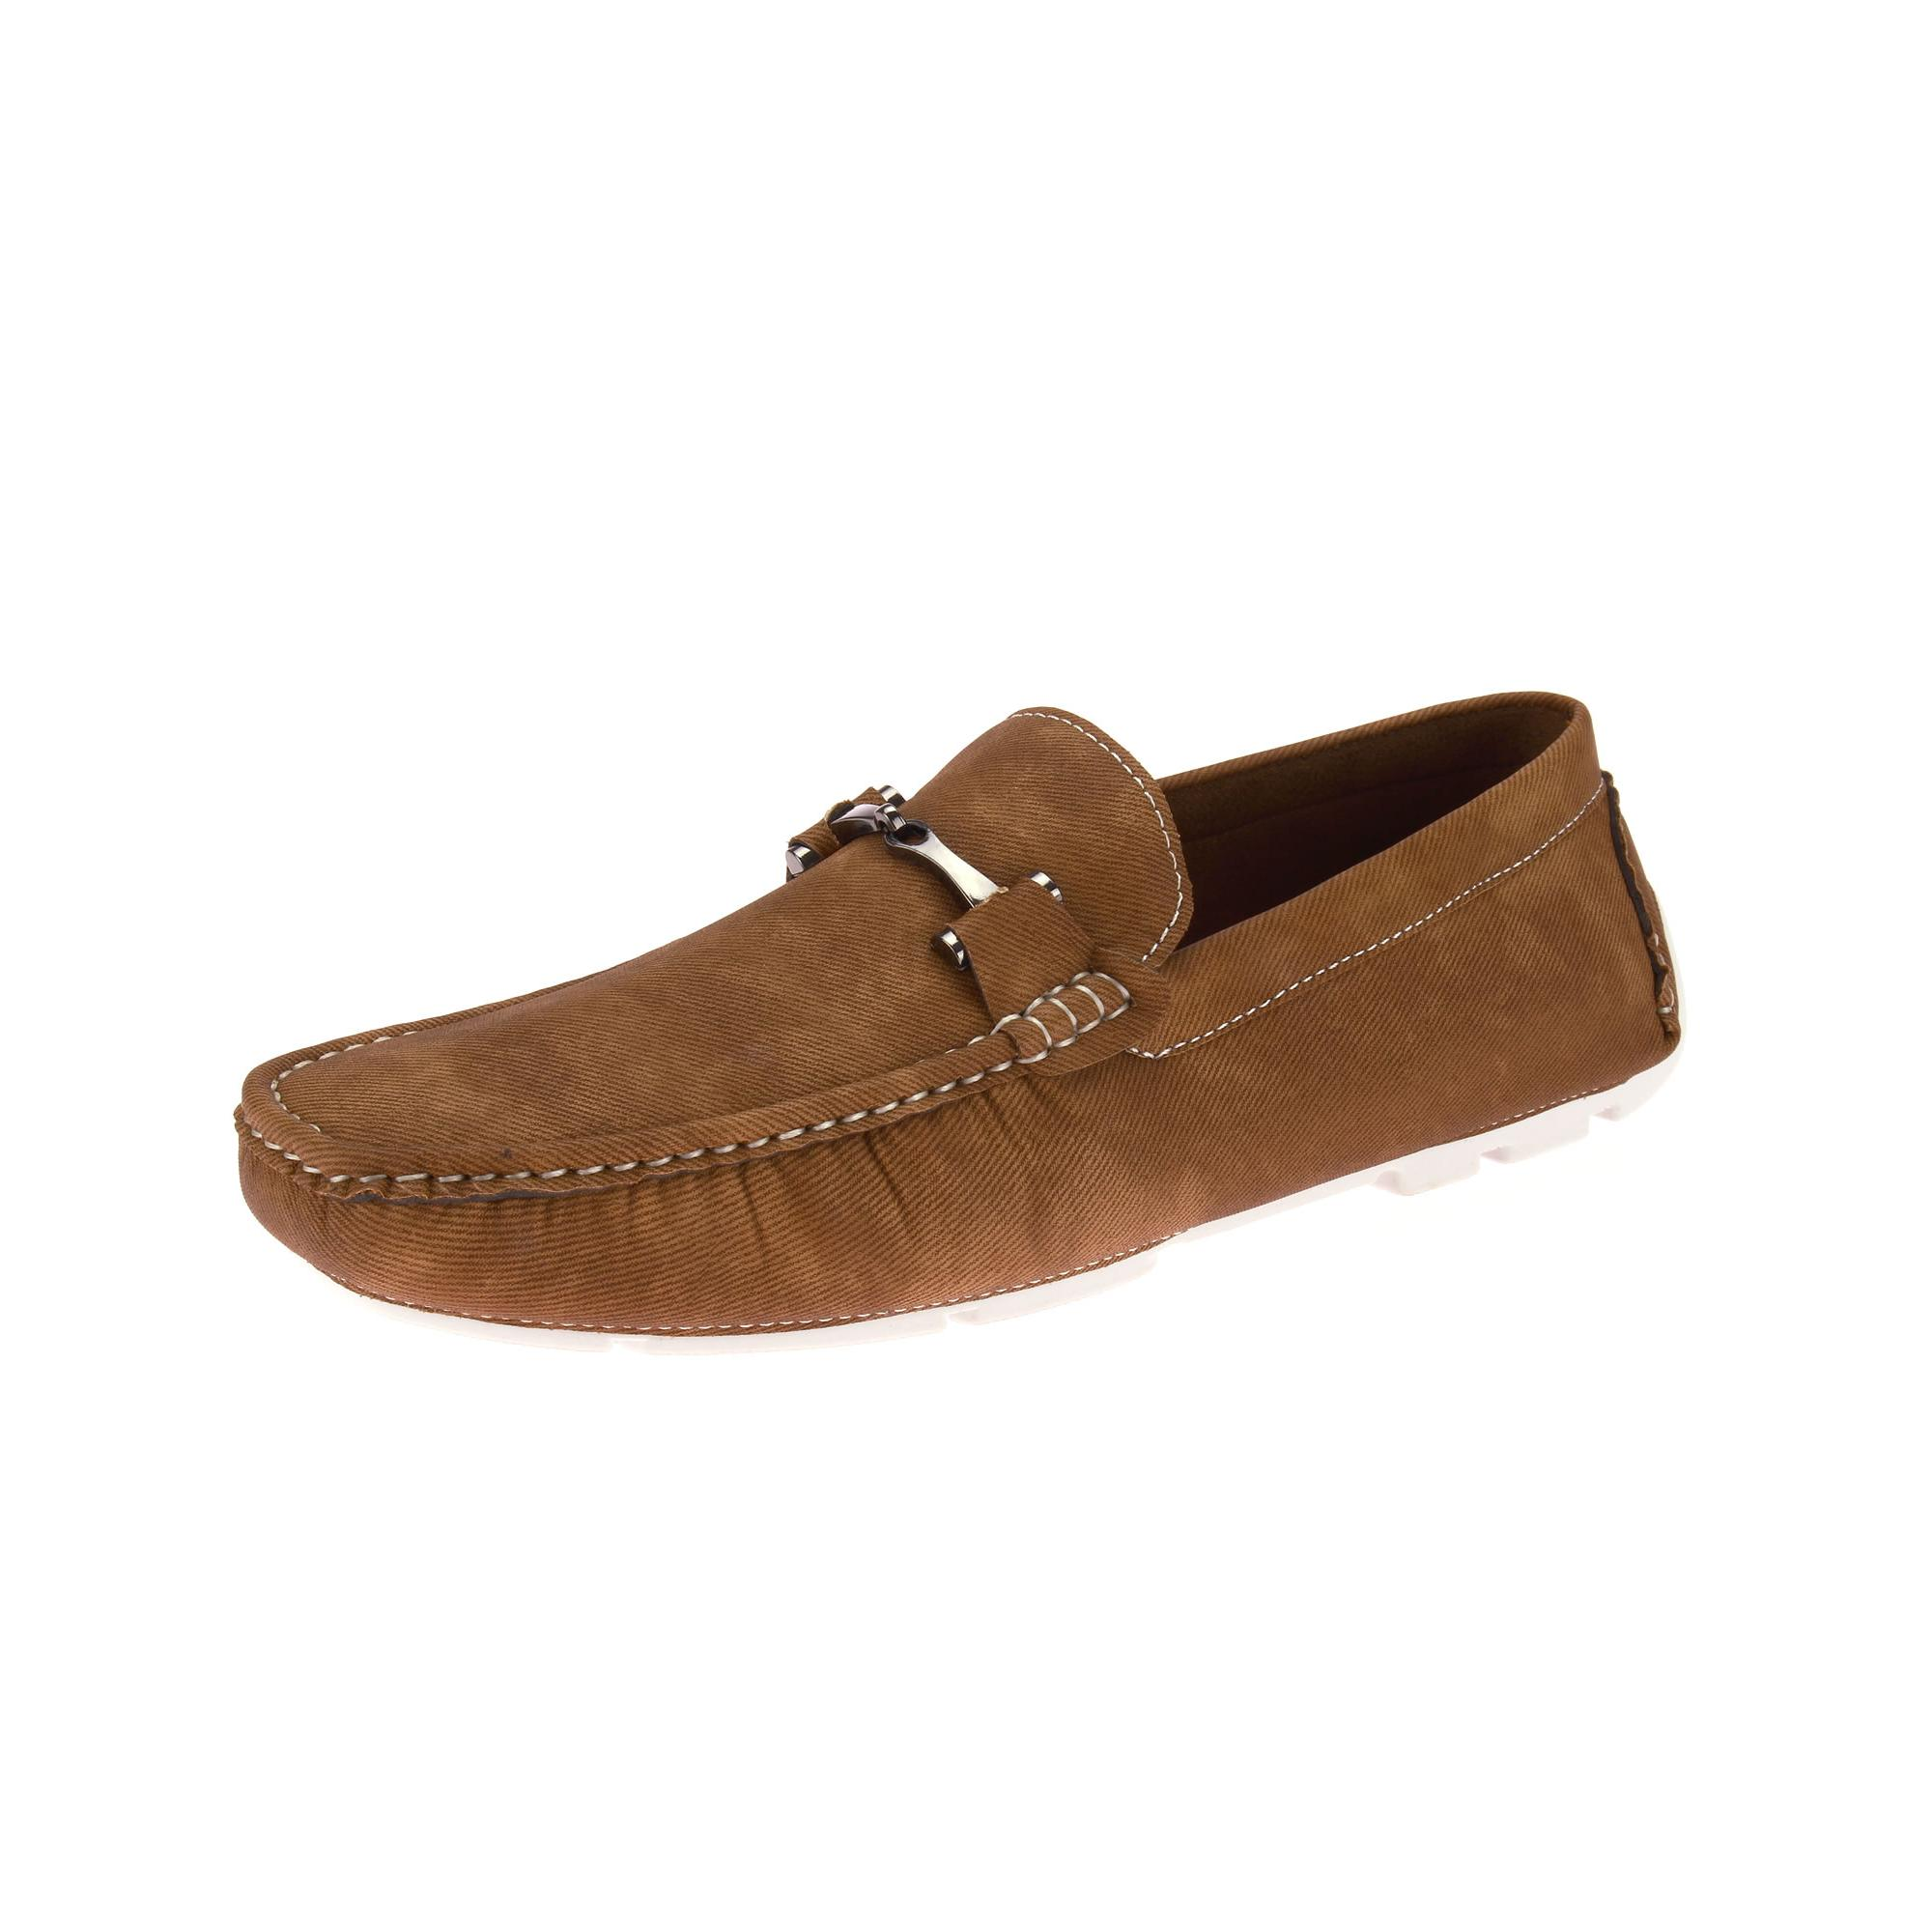 Fashion Summer Soft Moccasins Men Loafers Genuine Leather Flats Driving Shoes Light Brown 12M US